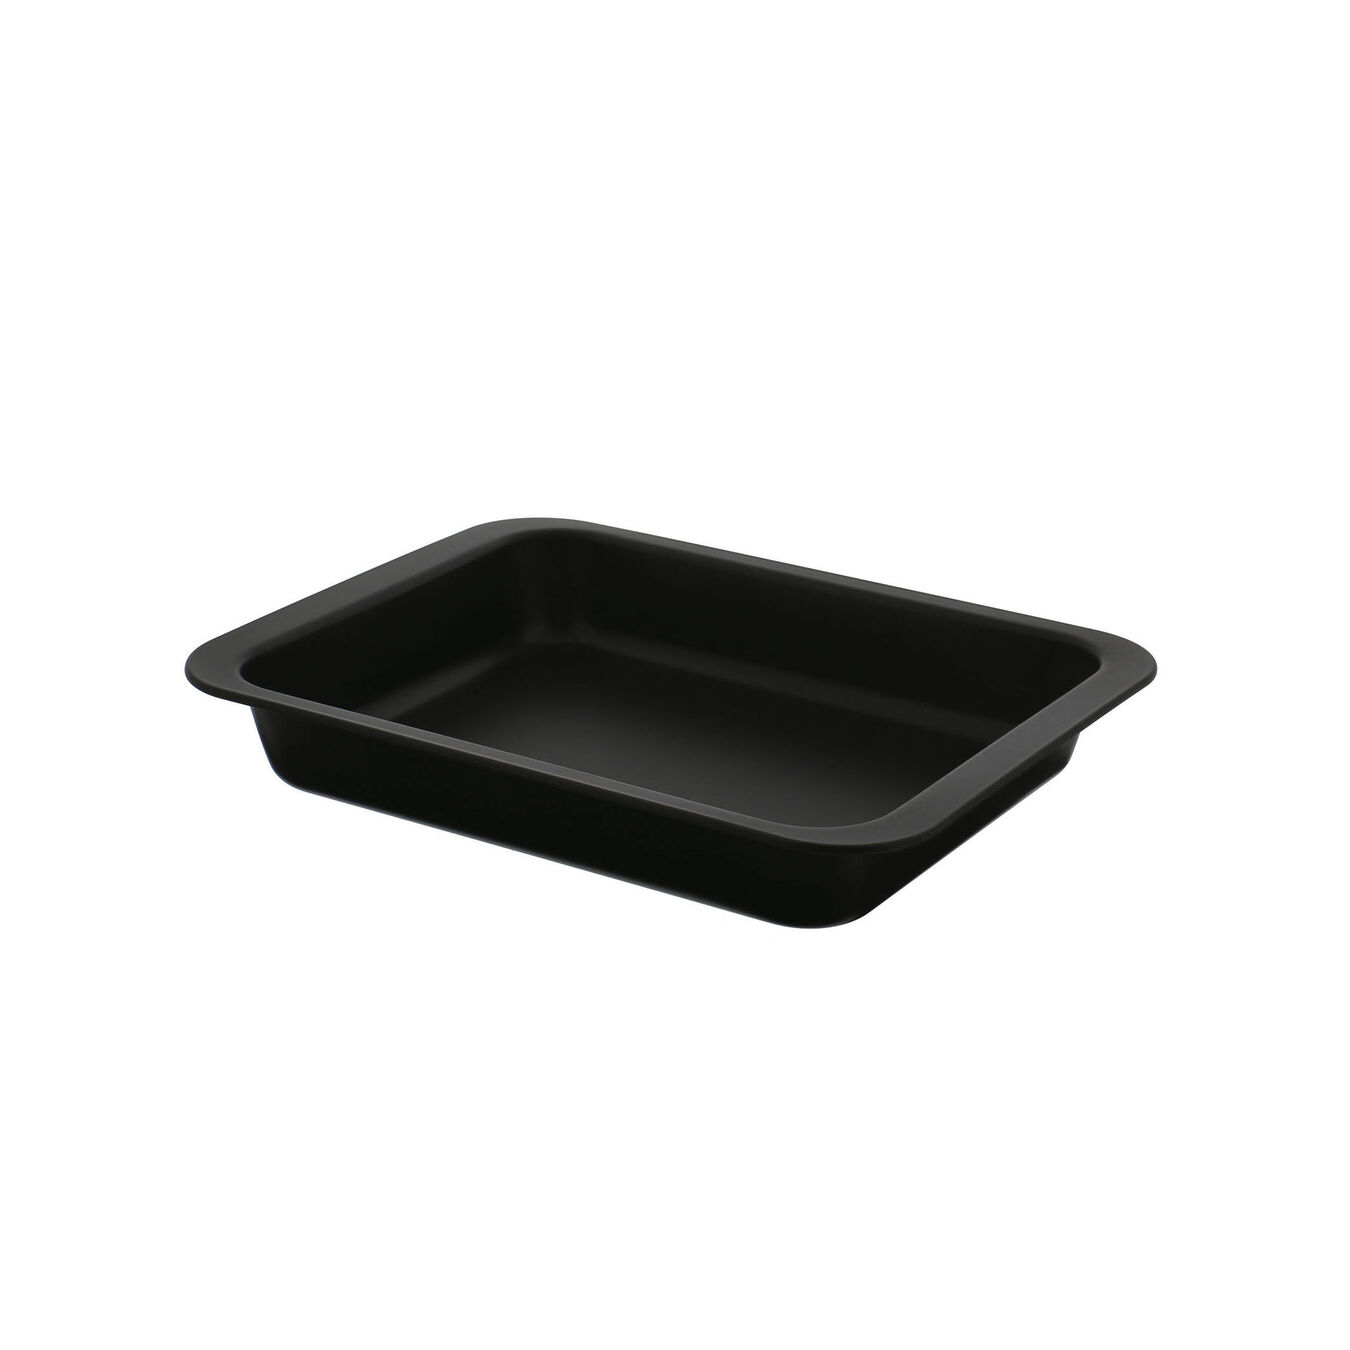 Steel square Oven dish, Black,,large 1